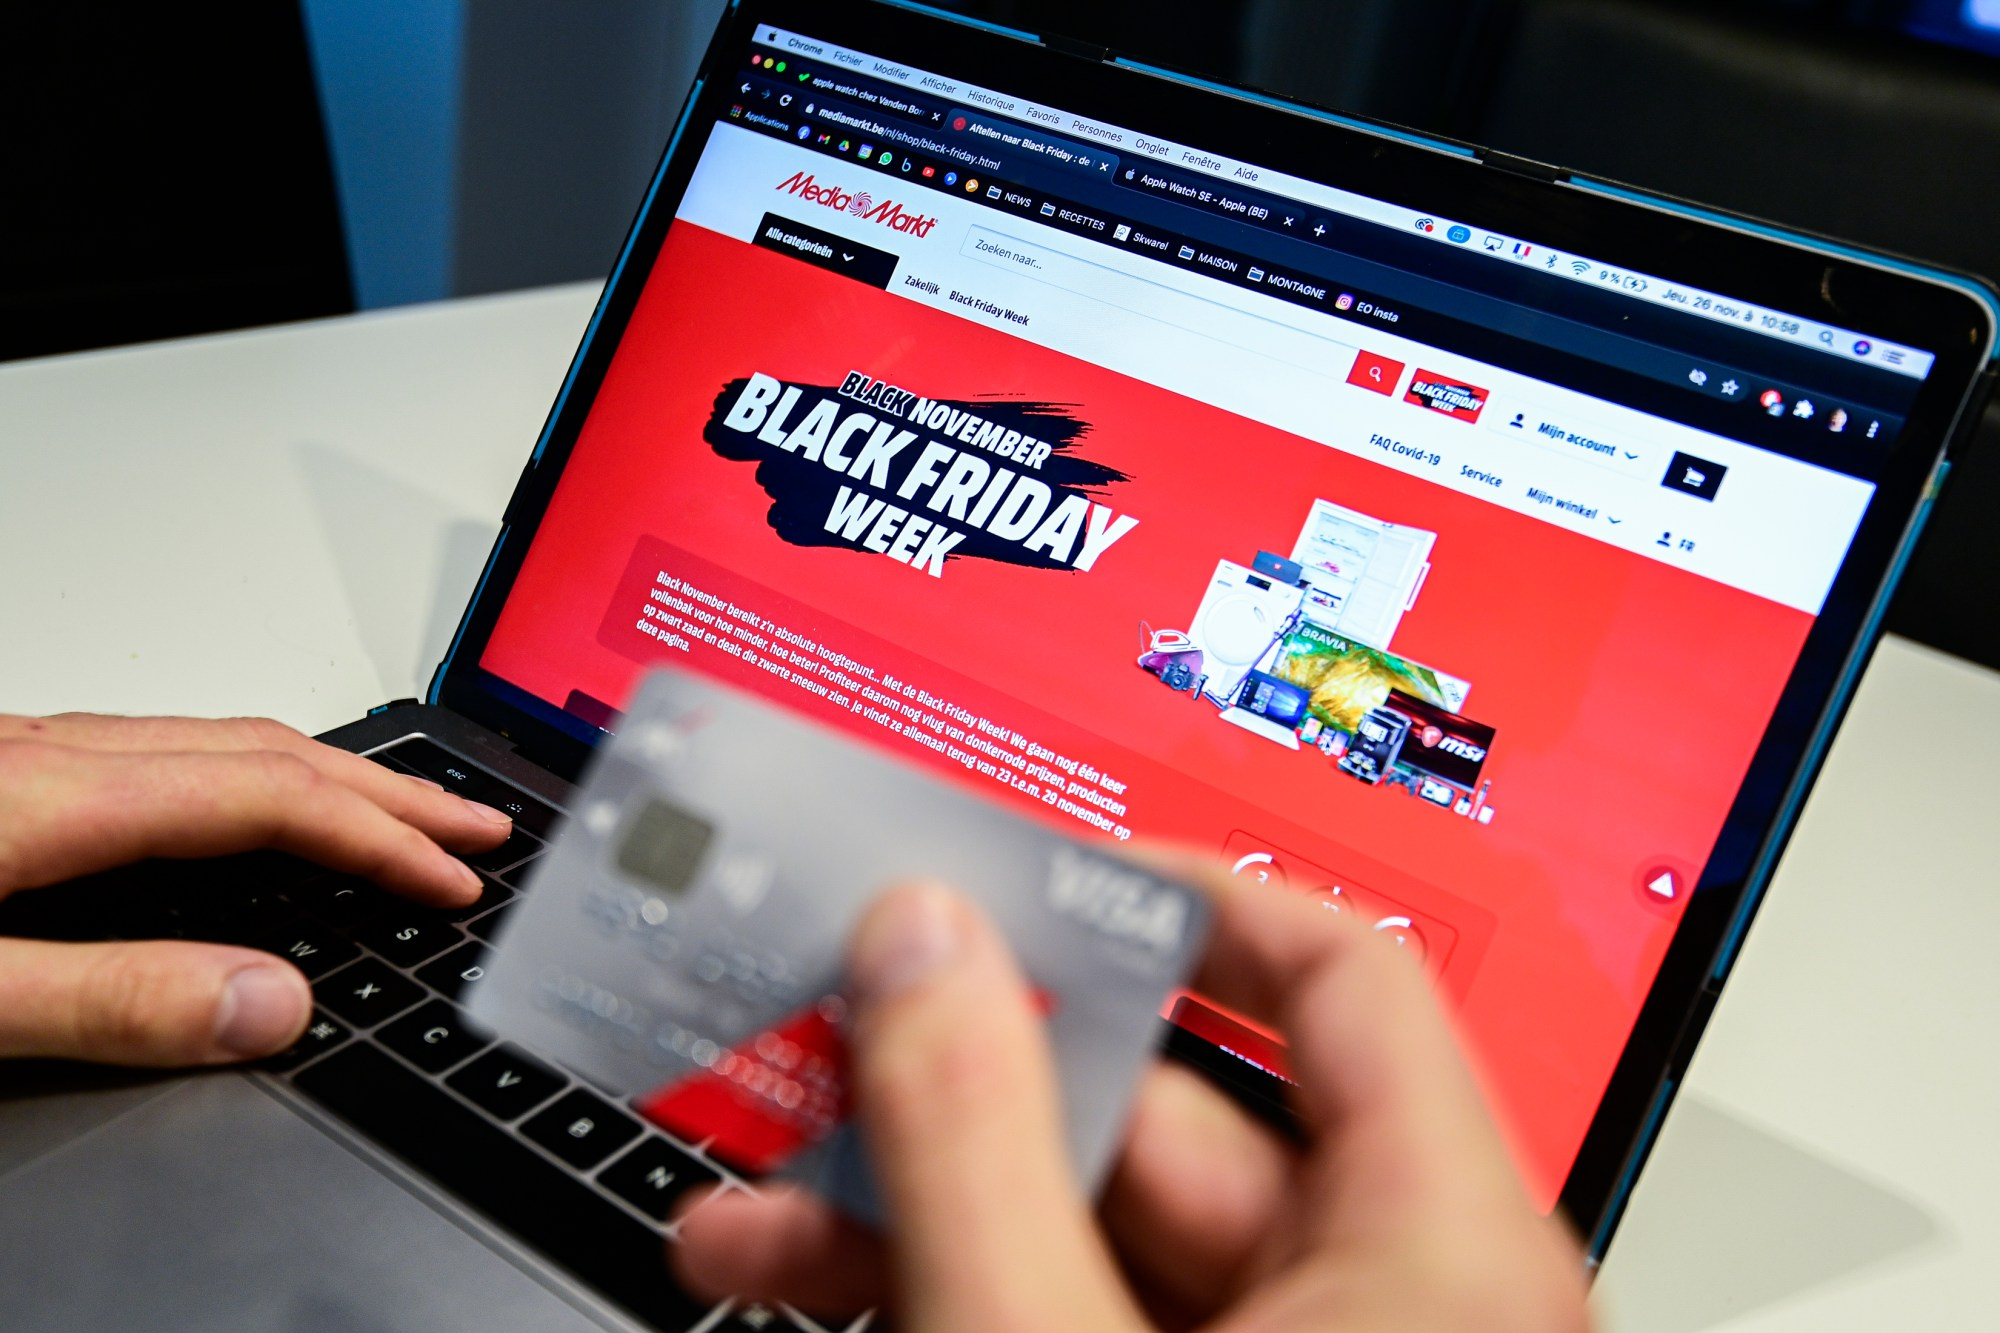 Illustration picture shows a person shopping online, during a Black Friday sale event, on Nov. 26, 2020. (LAURIE DIEFFEMBACQ/BELGA MAG/AFP via Getty Images)